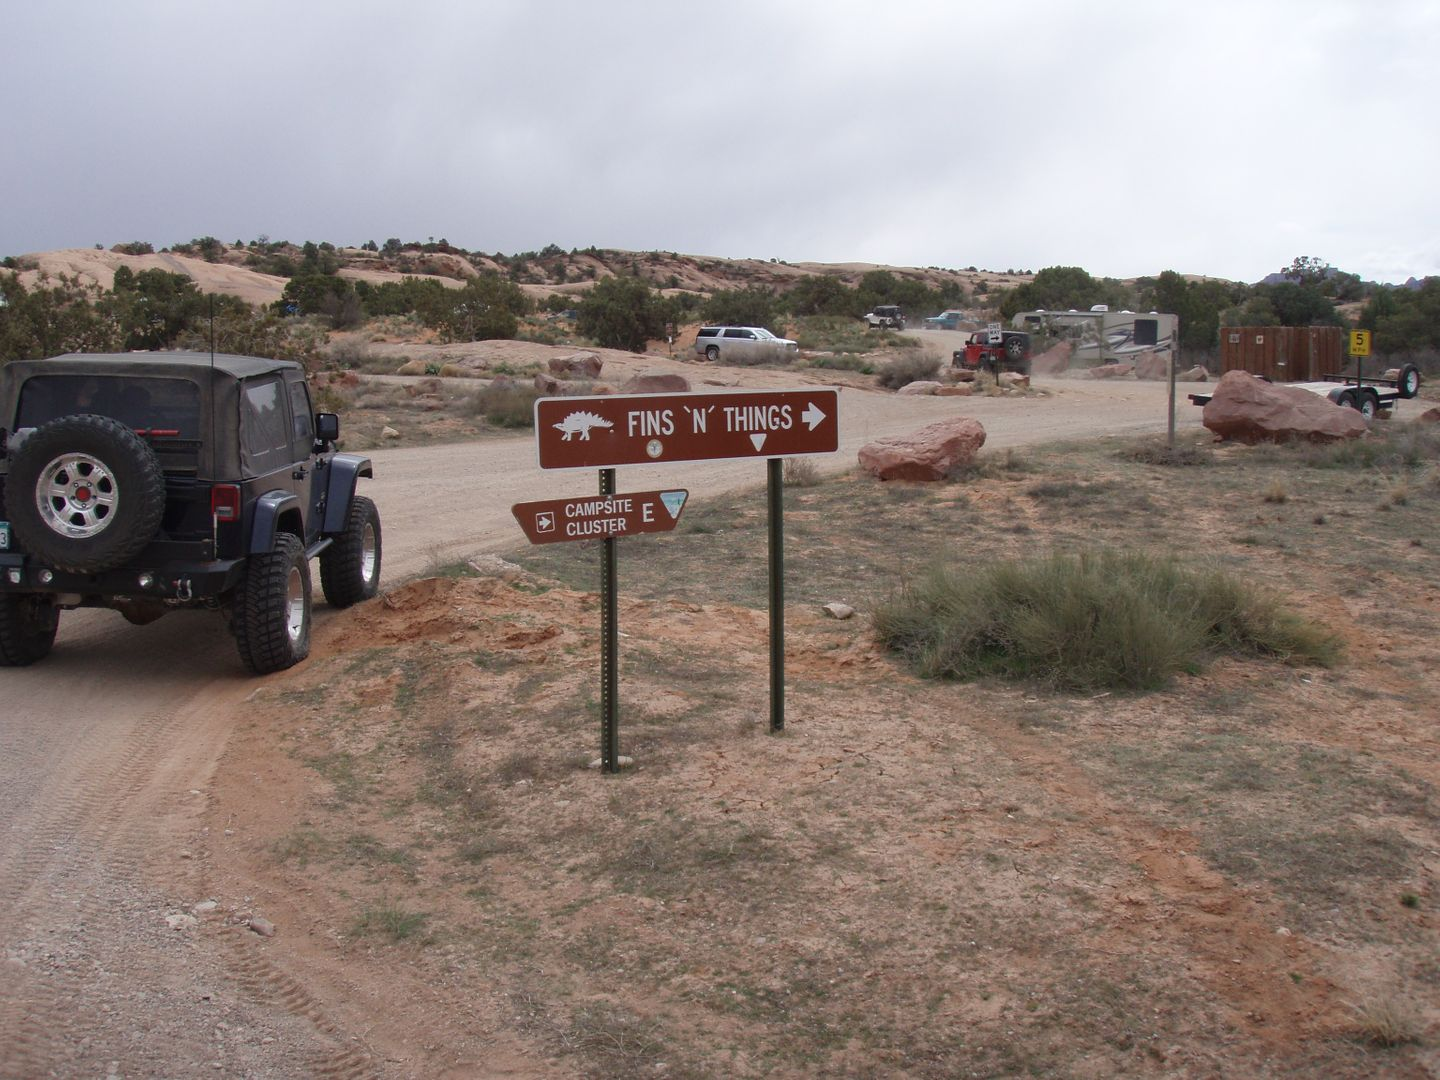 Fins and Things - Waypoint 1: Fins and Things Trailhead